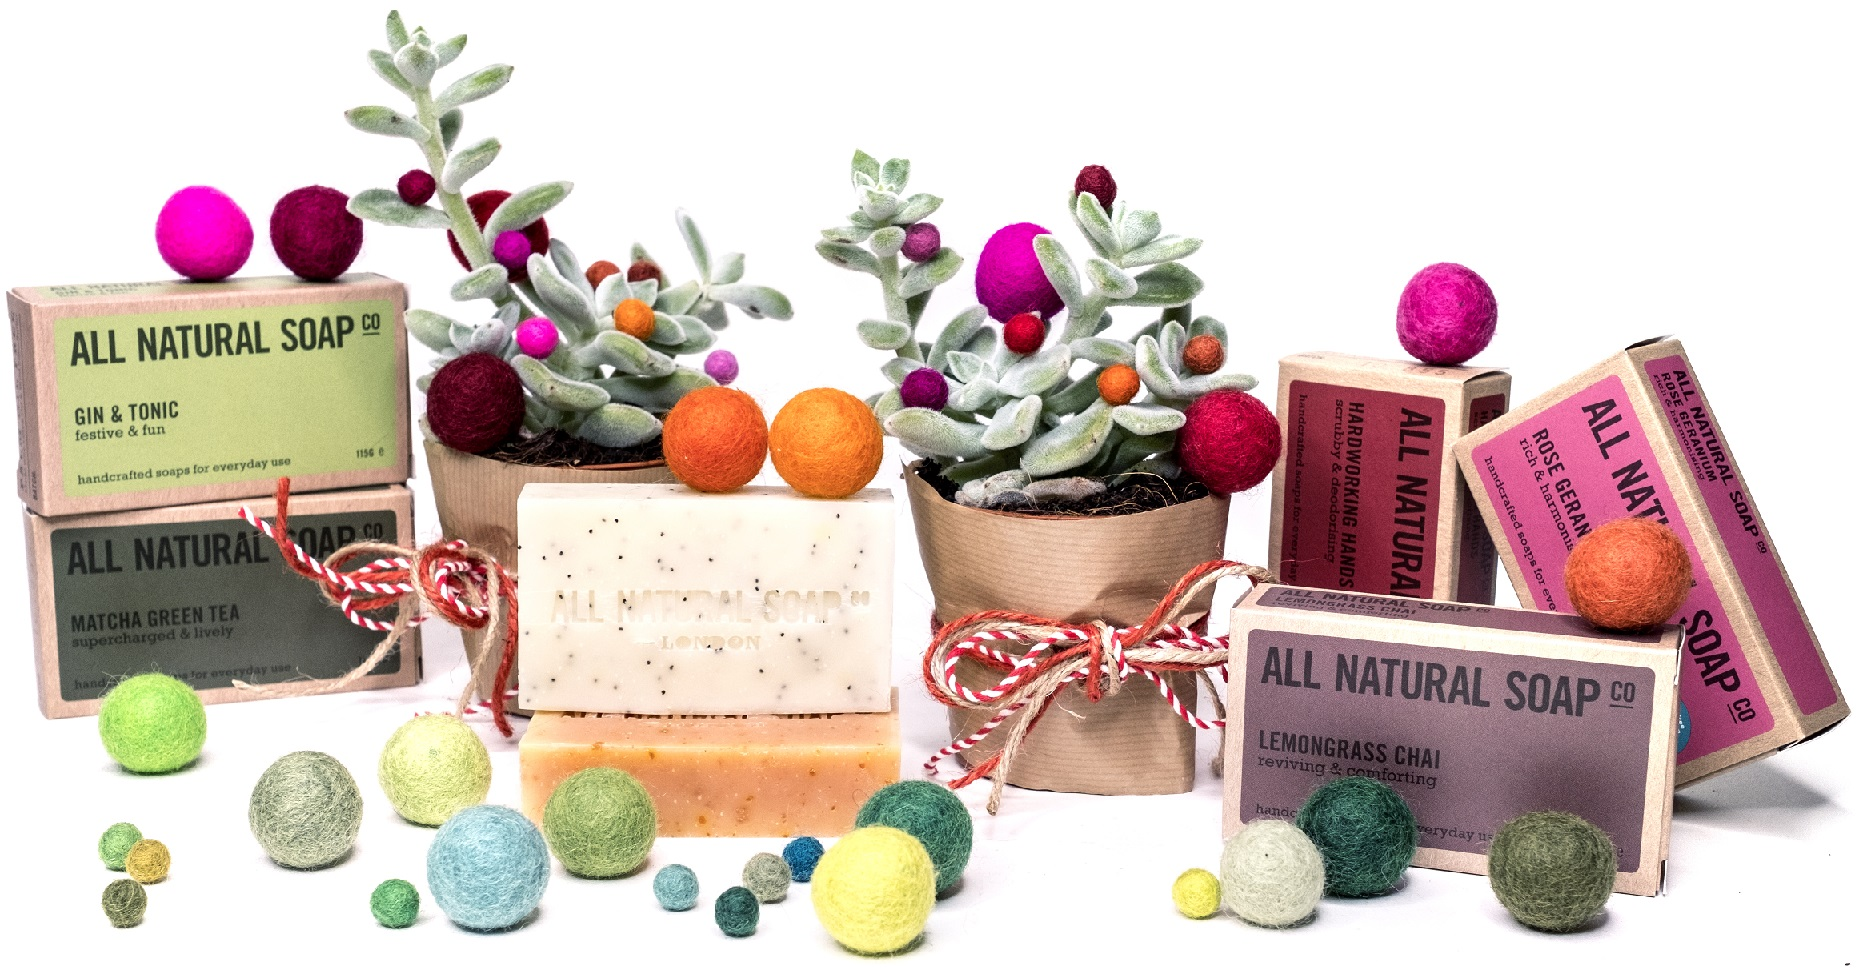 Christmas gifts all natural soap co award winning handmade soaps christmas gifts negle Image collections